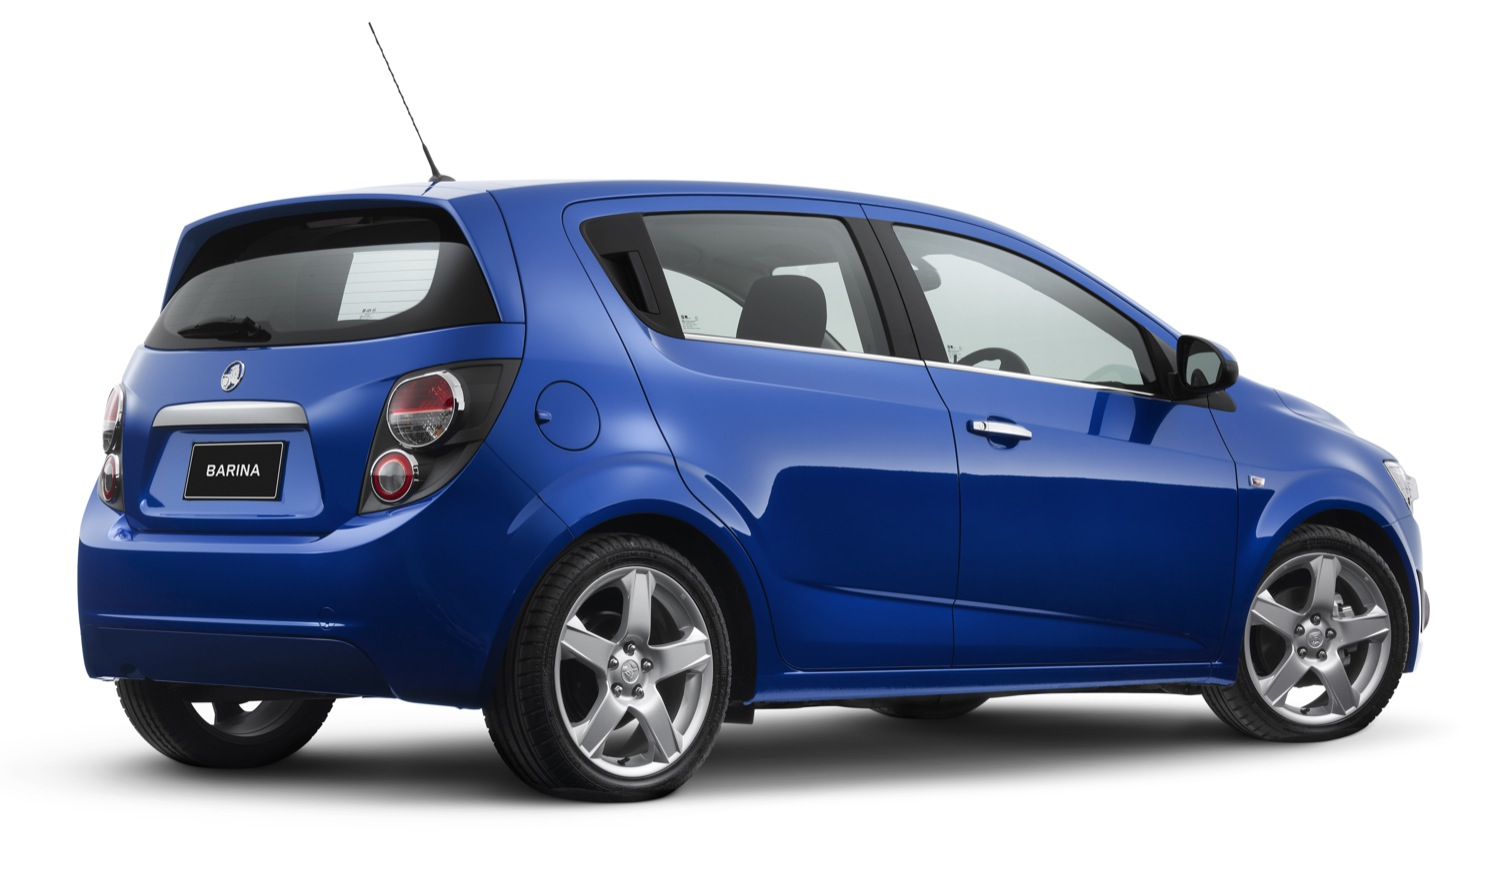 holden barina pictures #10